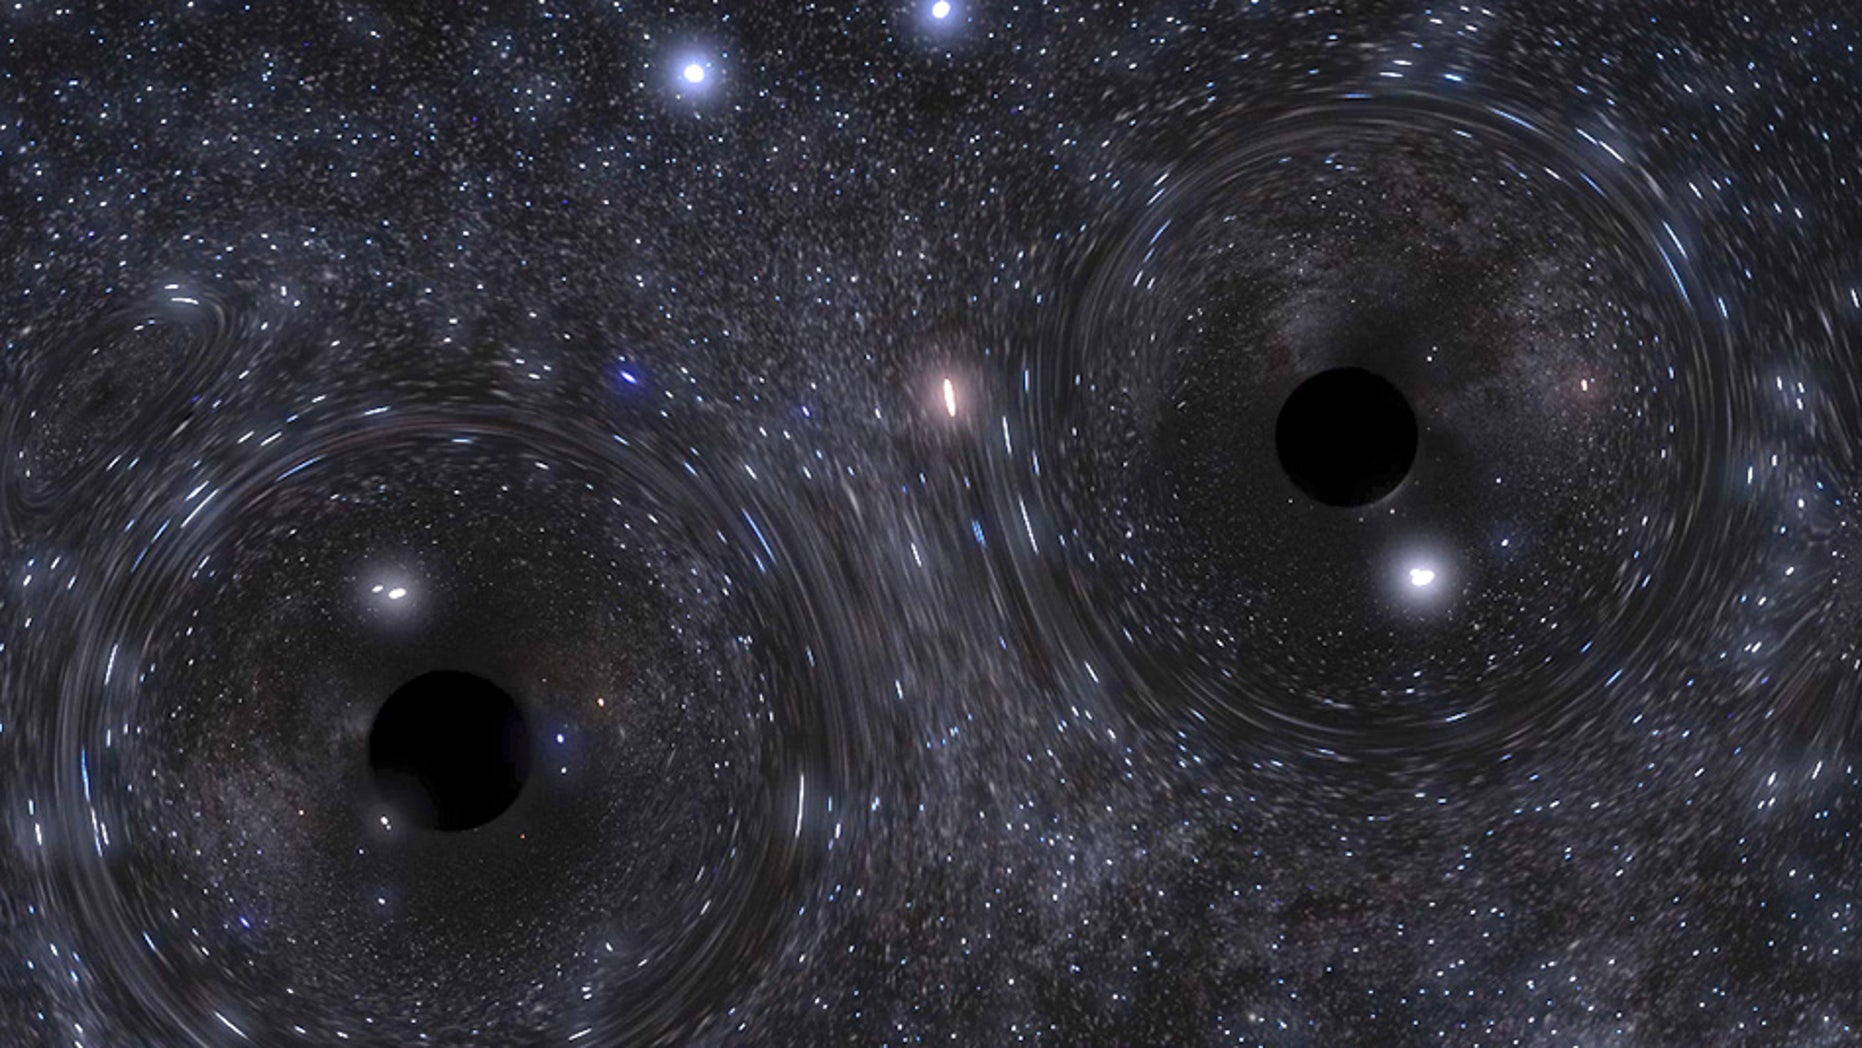 A snapshot of a simulation showing the binary black hole formed in the heart of a dense cluster of stars.